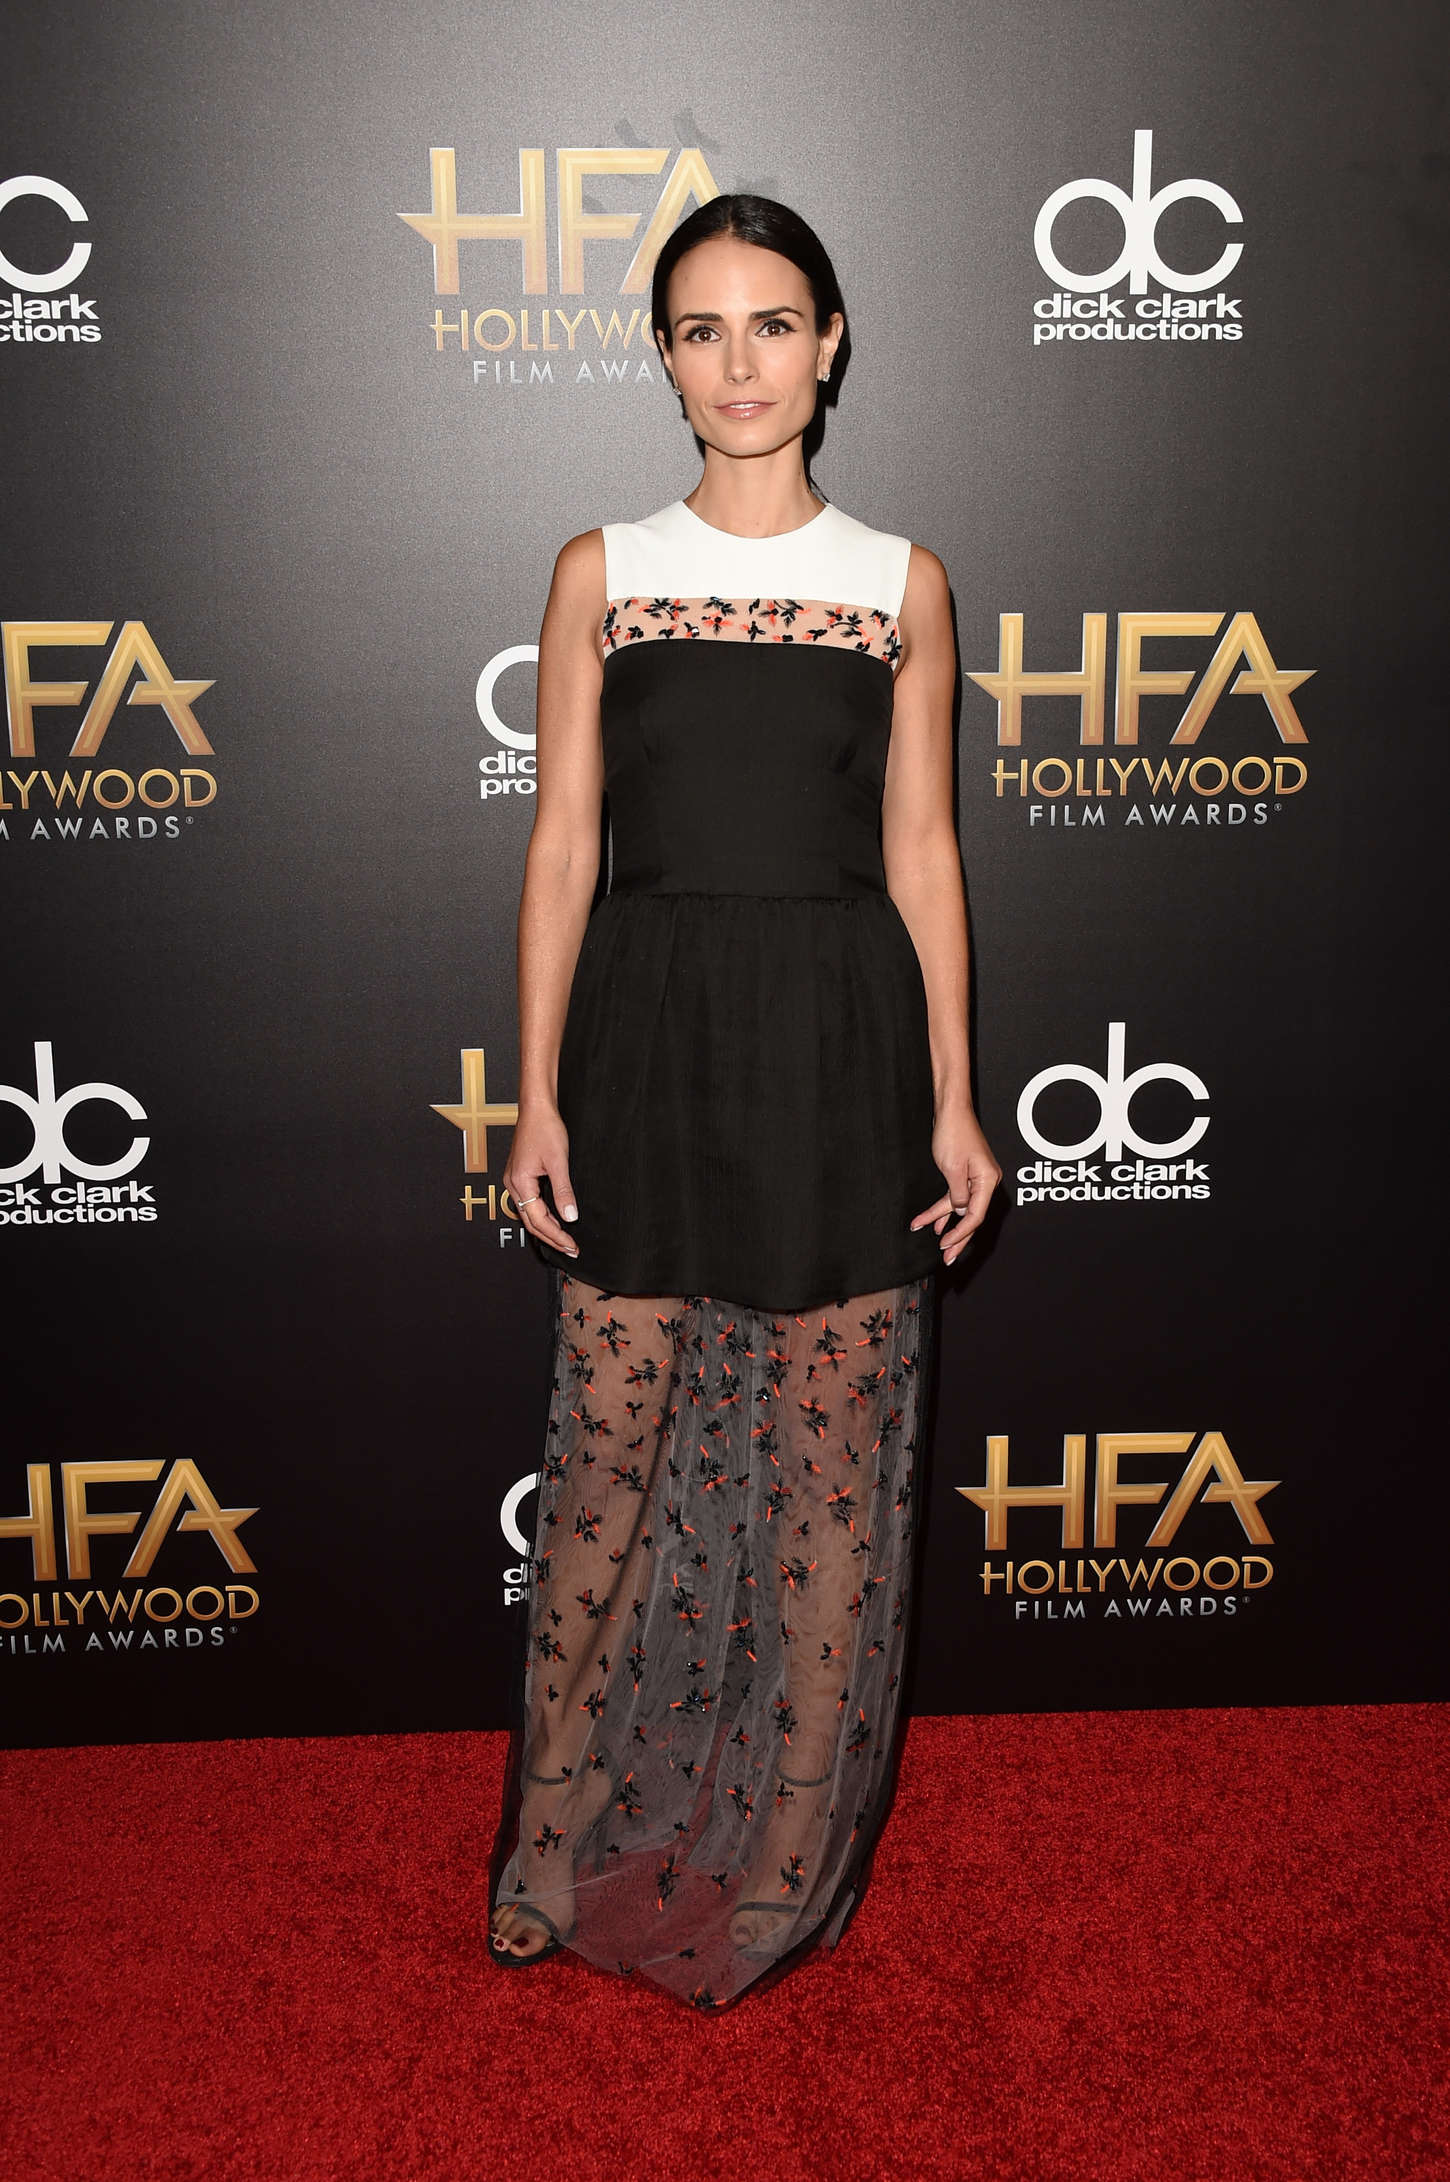 Jordana brewster in monique lhuillier at 19th annual hollywood film awards 2